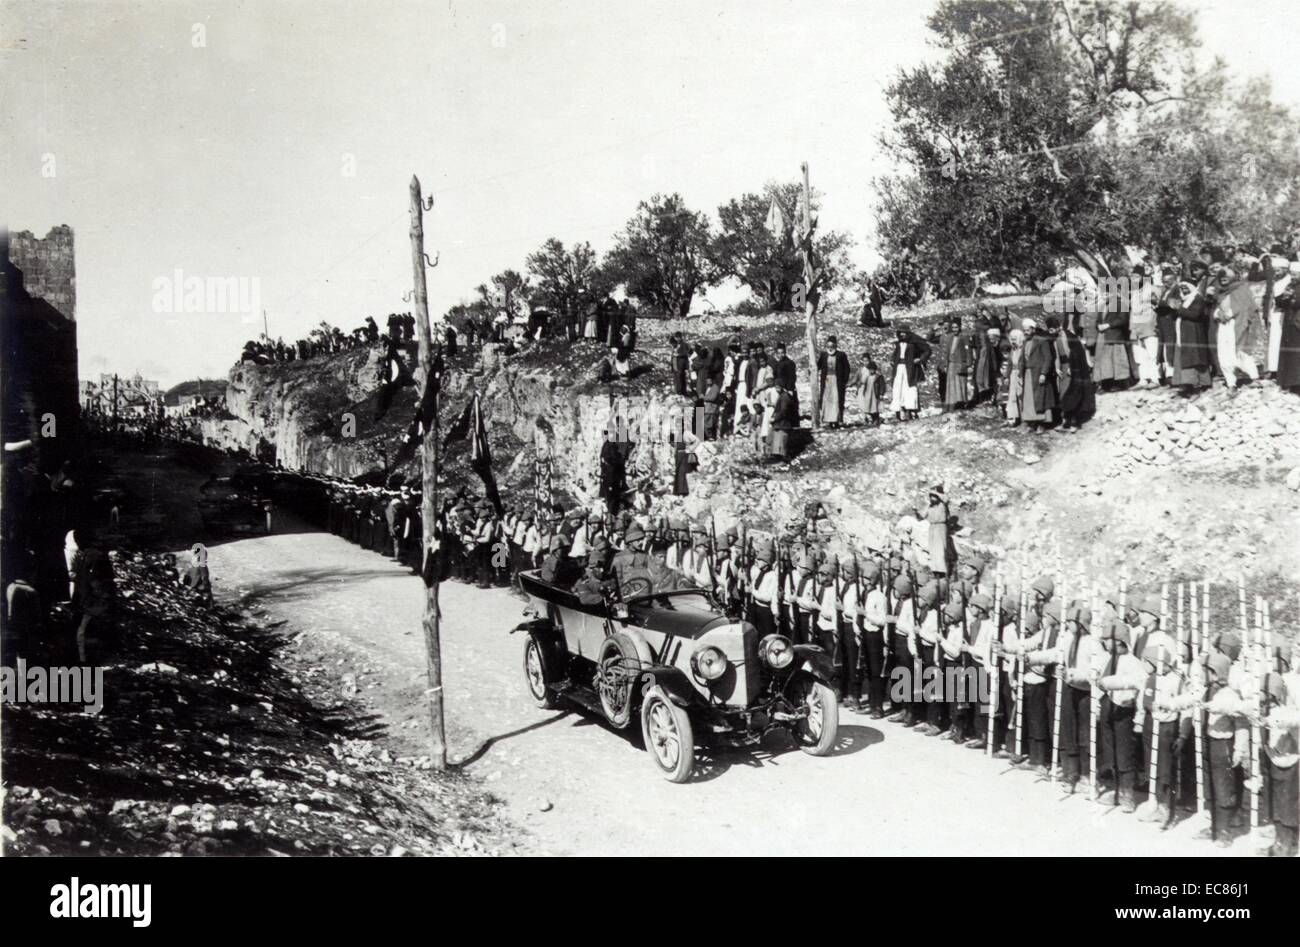 Turkish military commander reviews troops in Palestine 1916 - Stock Image